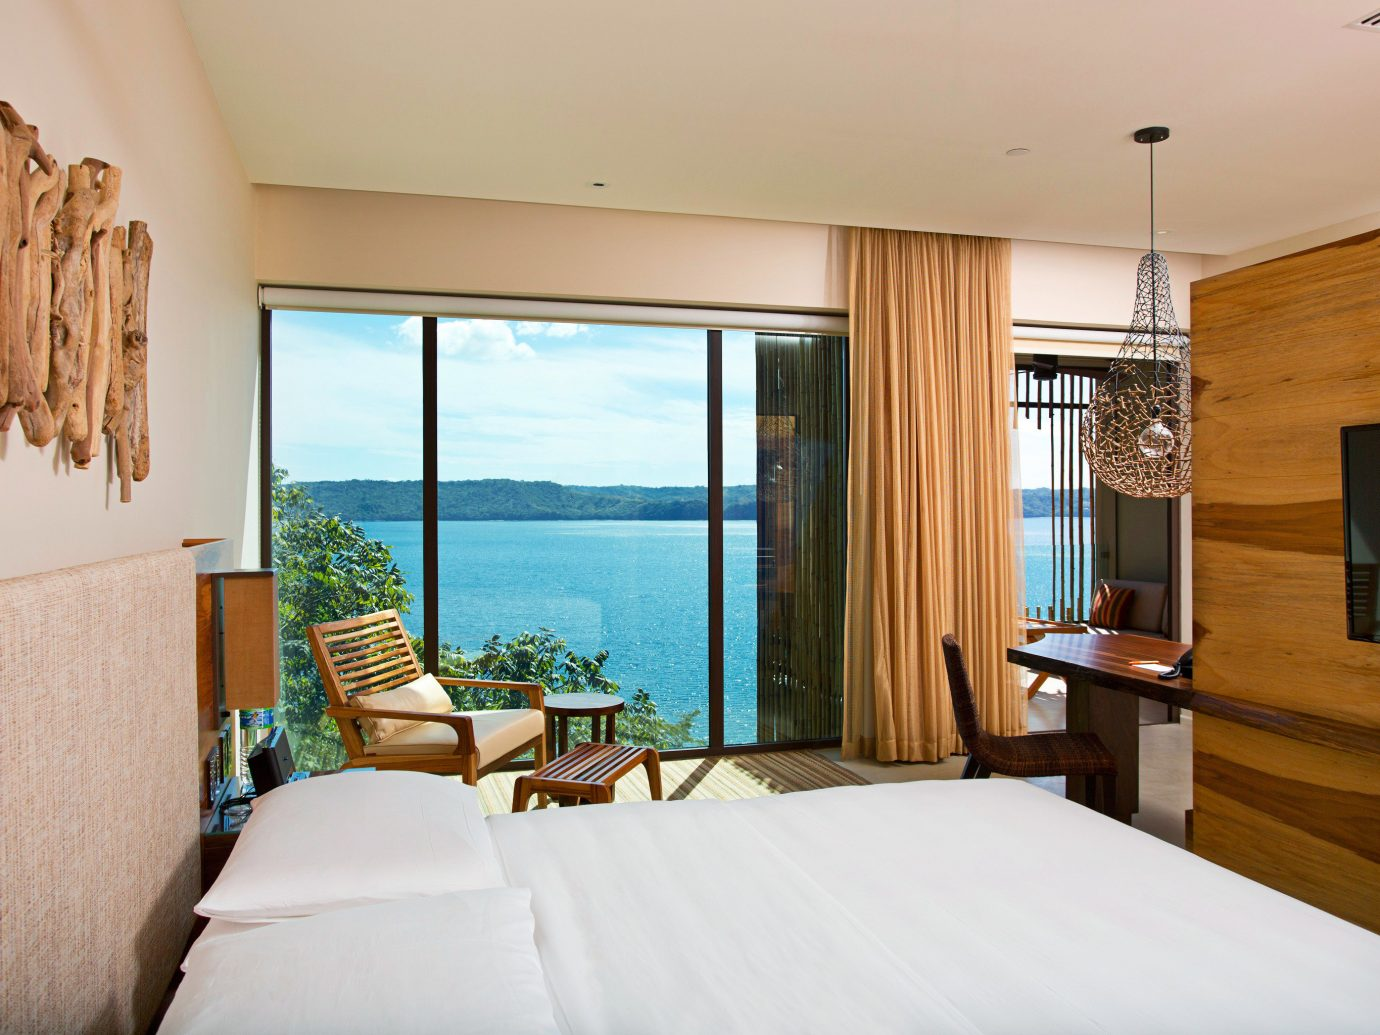 Bedroom At Andaz Hotel Papagayo In Costa Rica